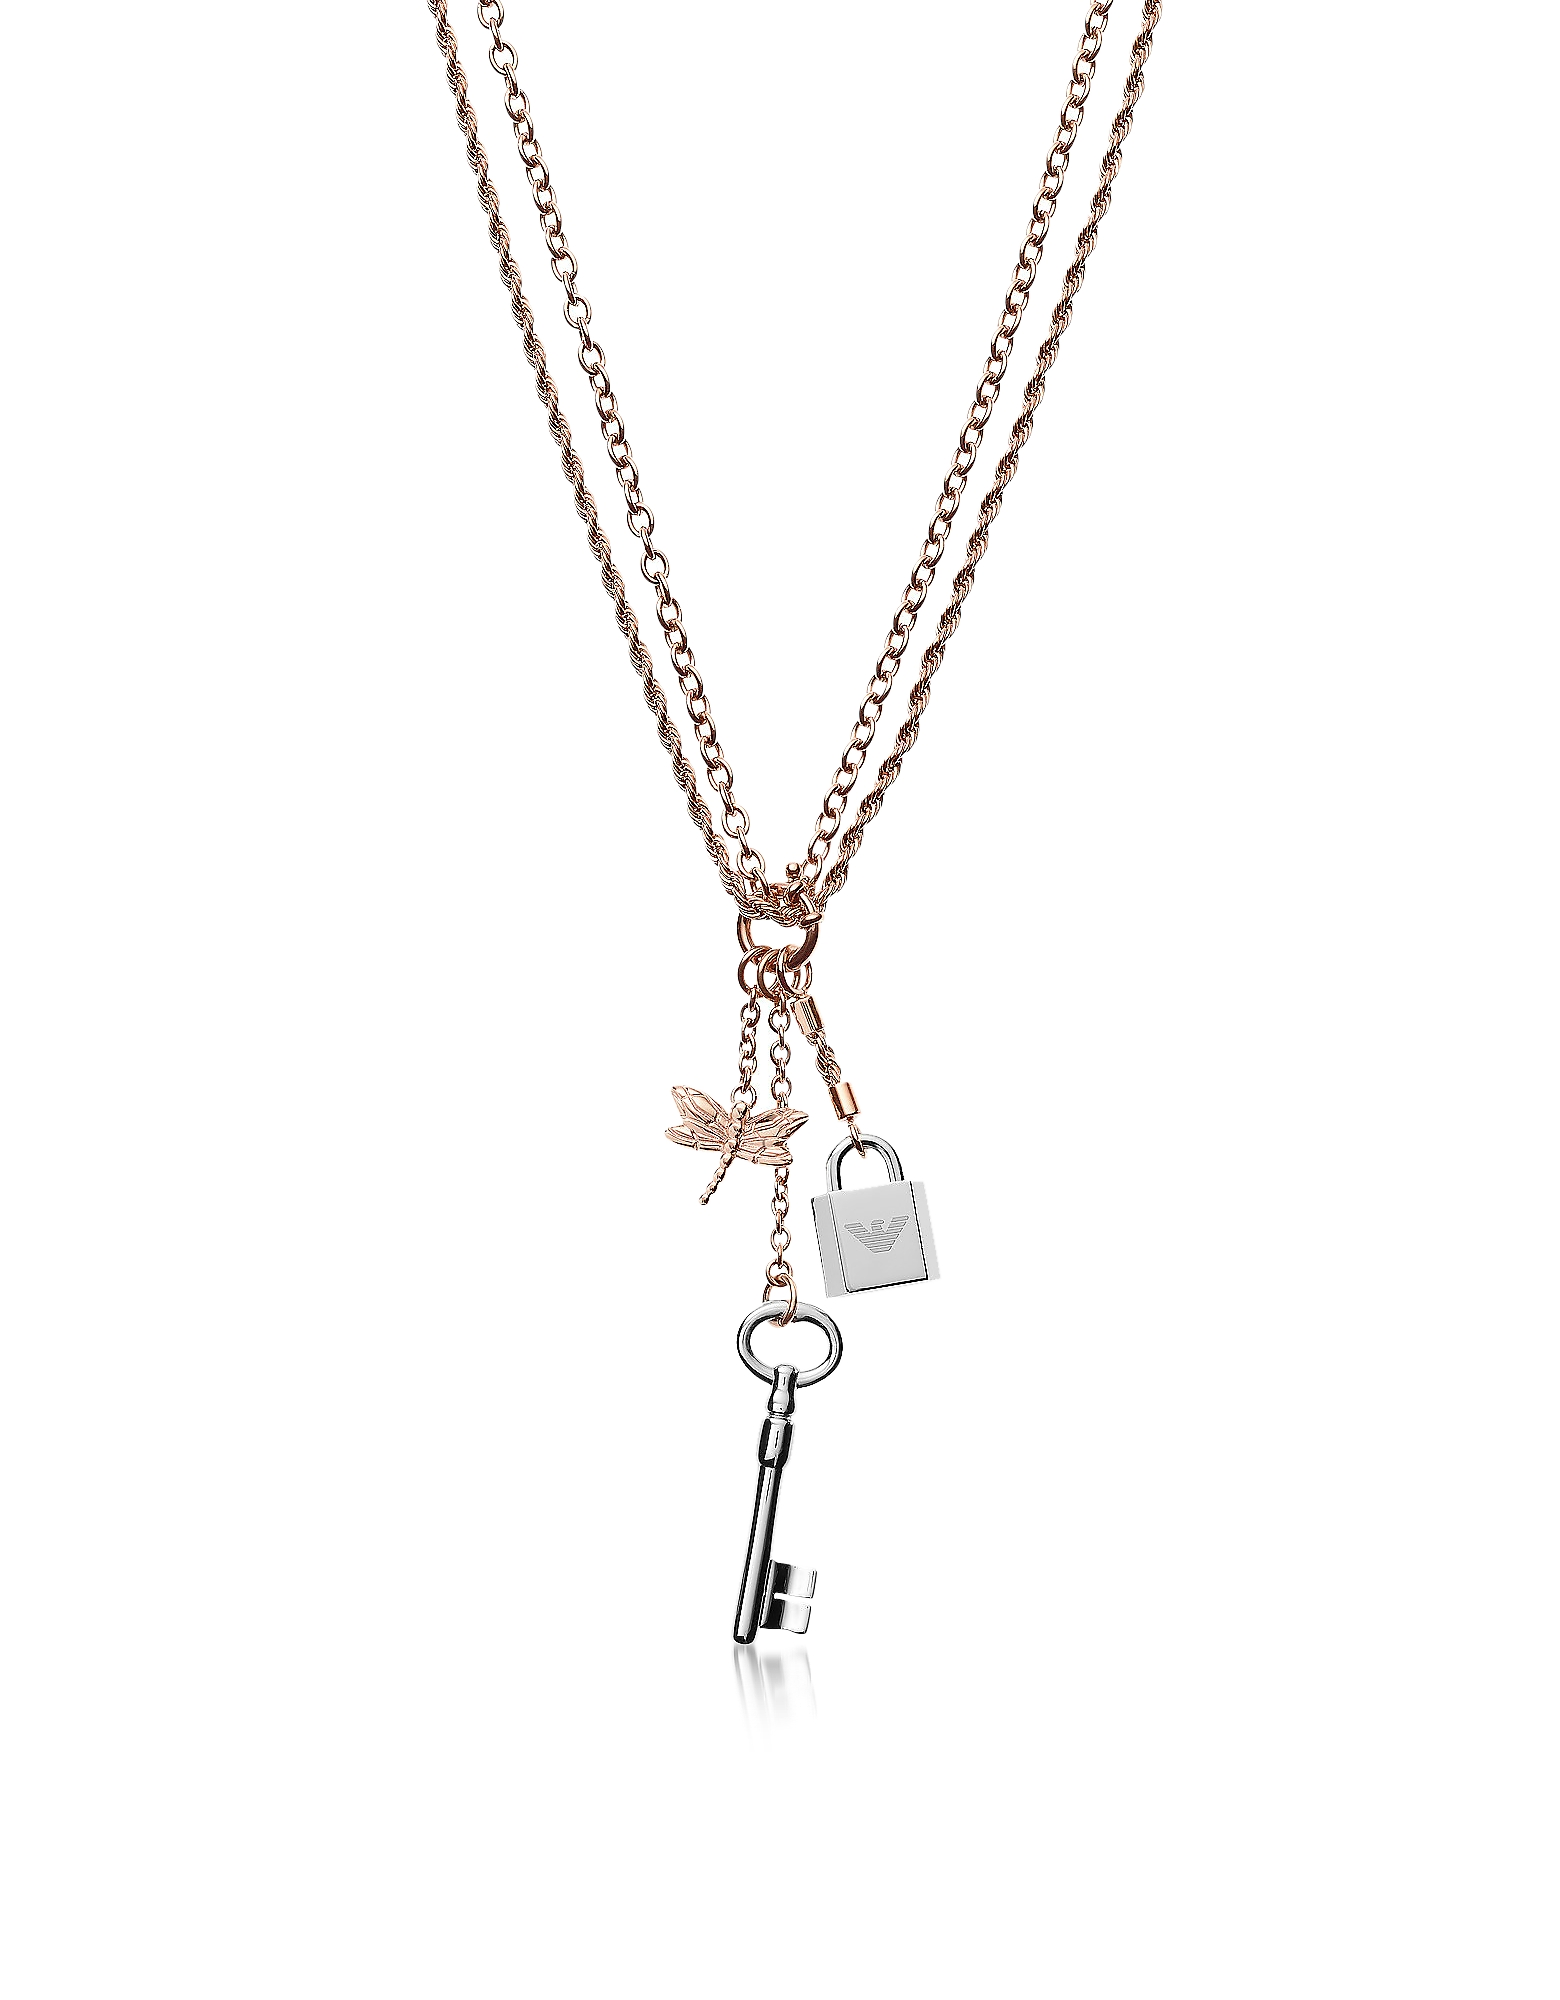 Emporio Armani Necklaces, EGS2578221 - Women's Necklace